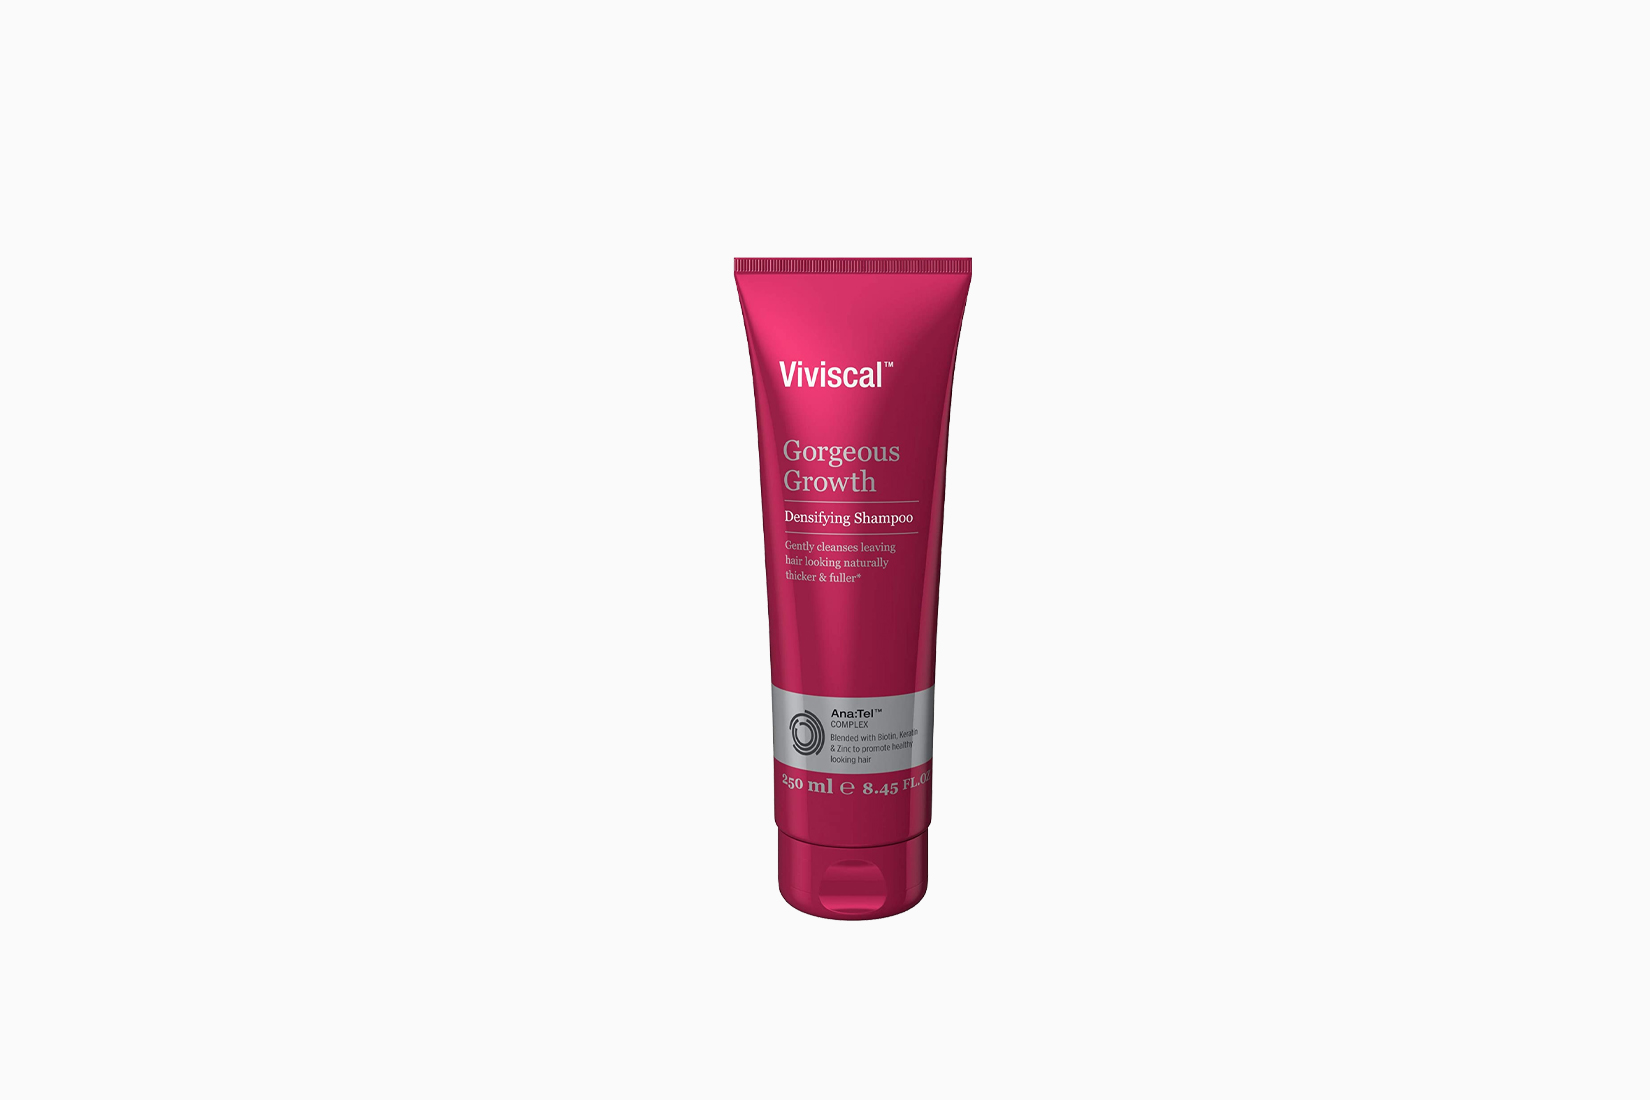 best hair growth shampoo women viviscal review - Luxe Digital